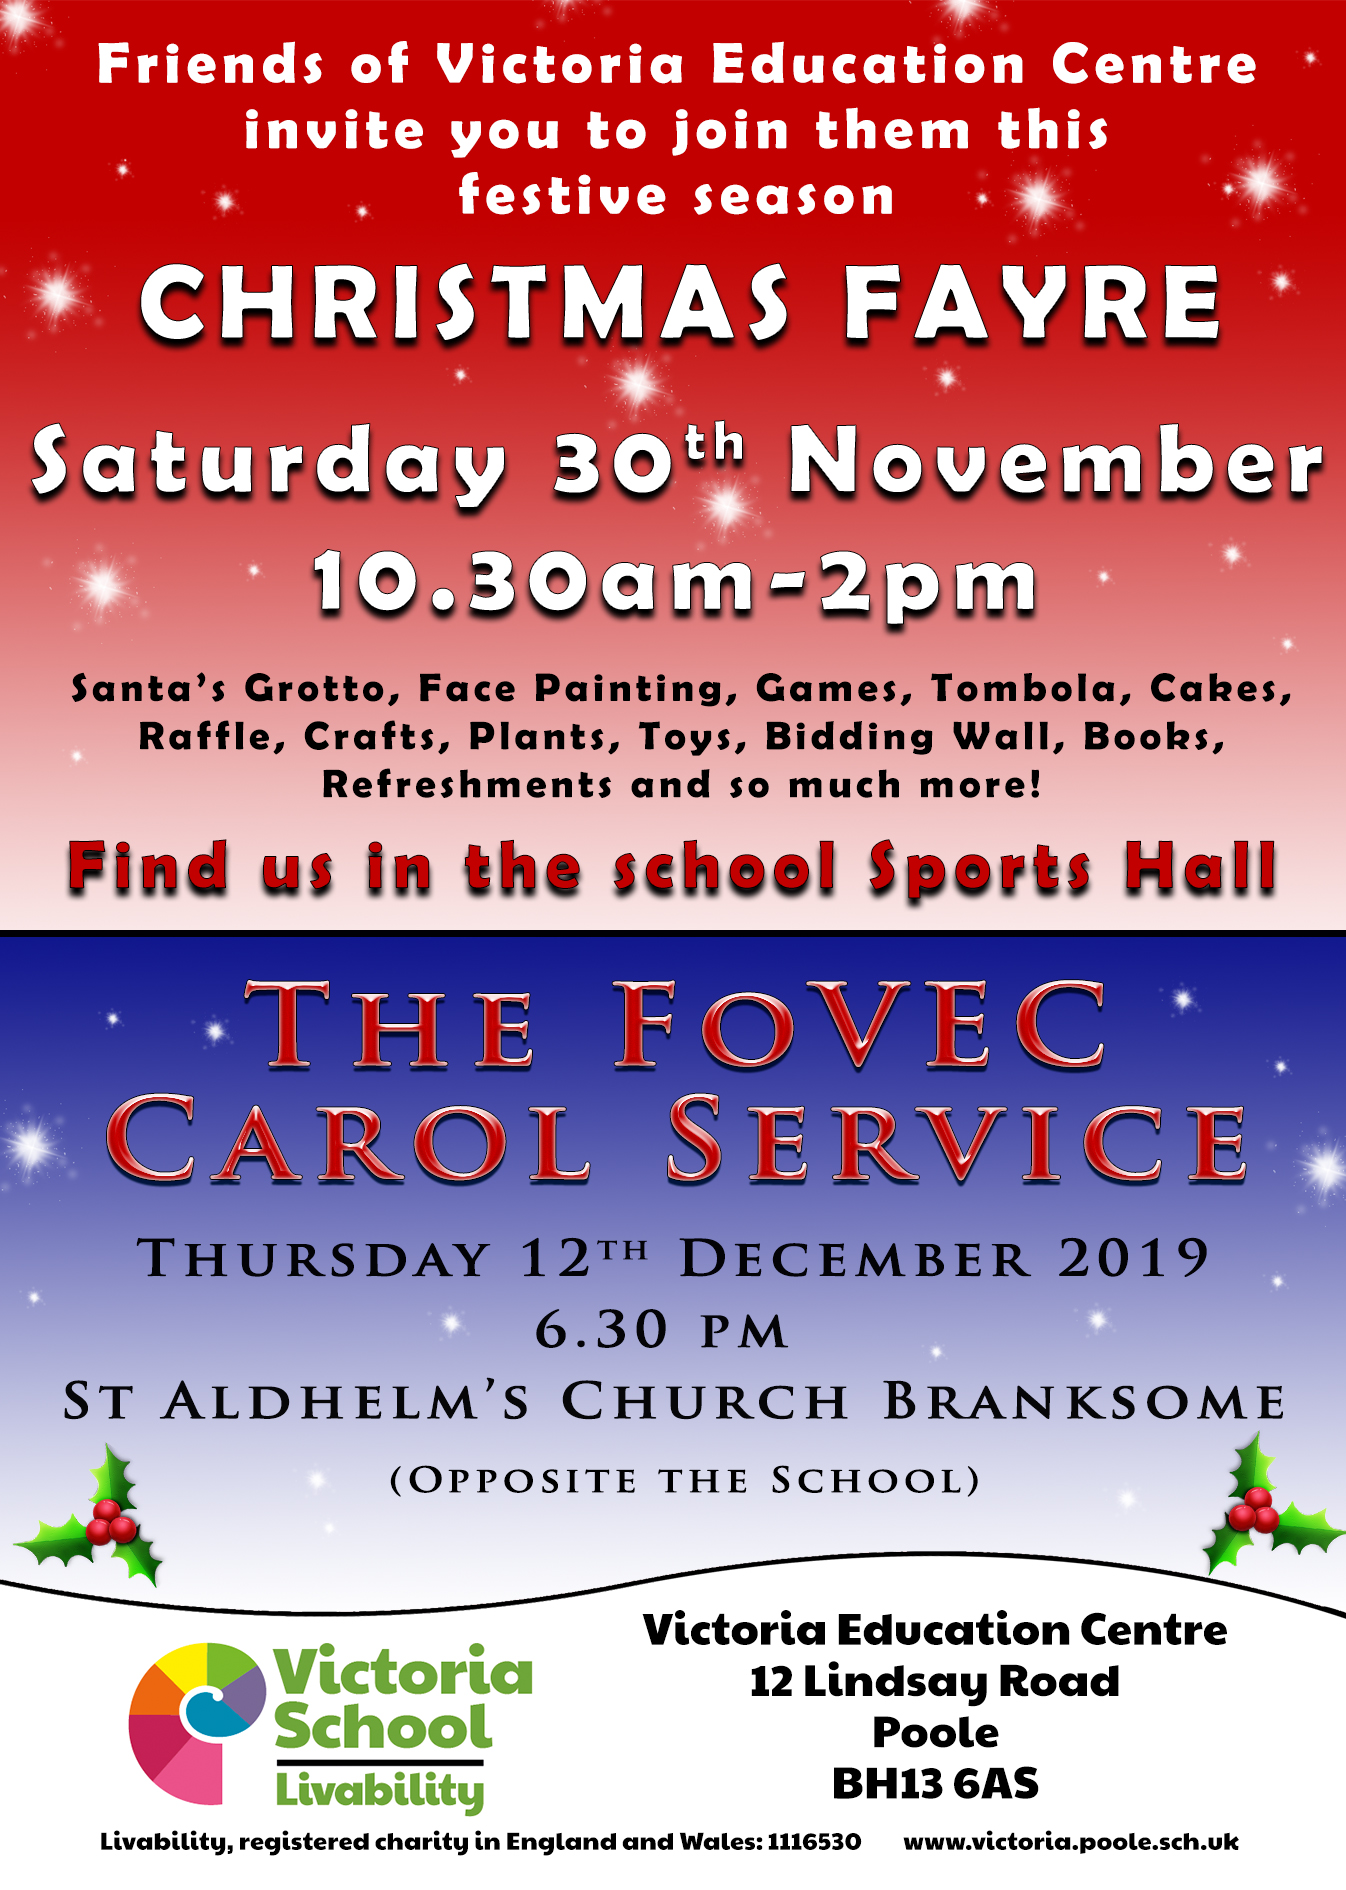 Victoria Education Centre Christmas Fayre